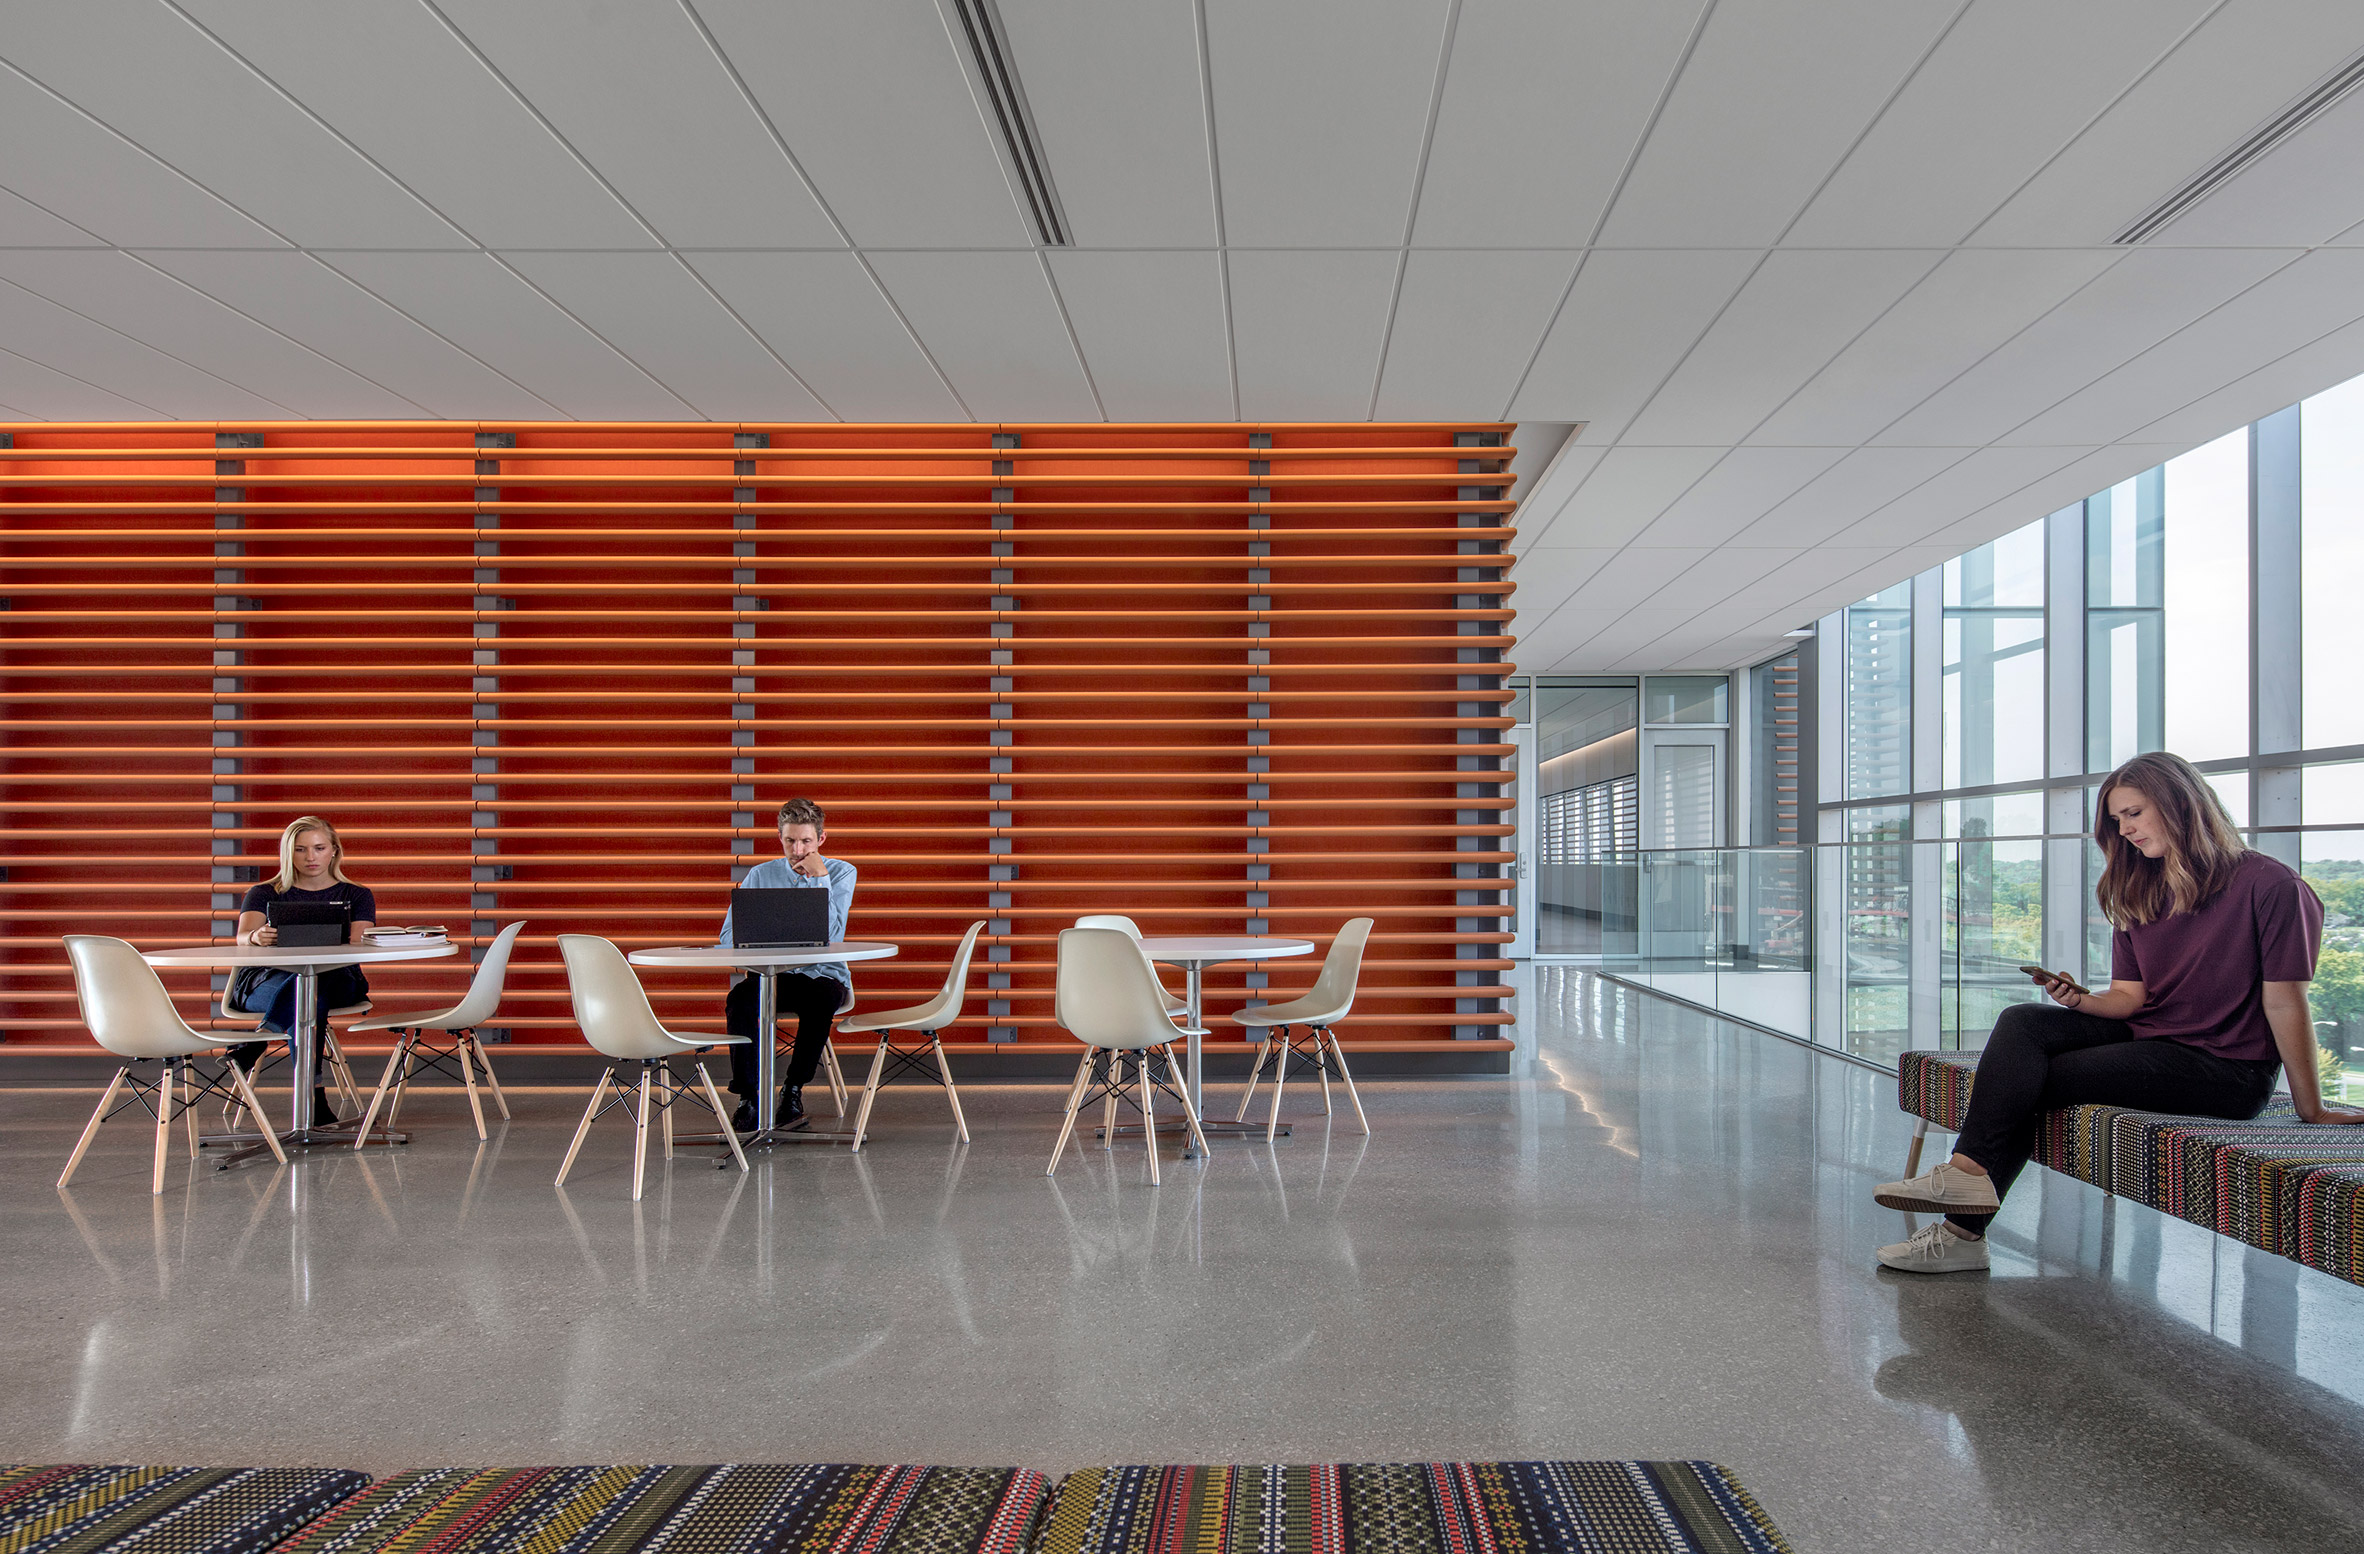 medical-center-university-of-kansas-co-architects-architecture-kansas-city-usa_dezeen_2364_col_15-852x560.jpg